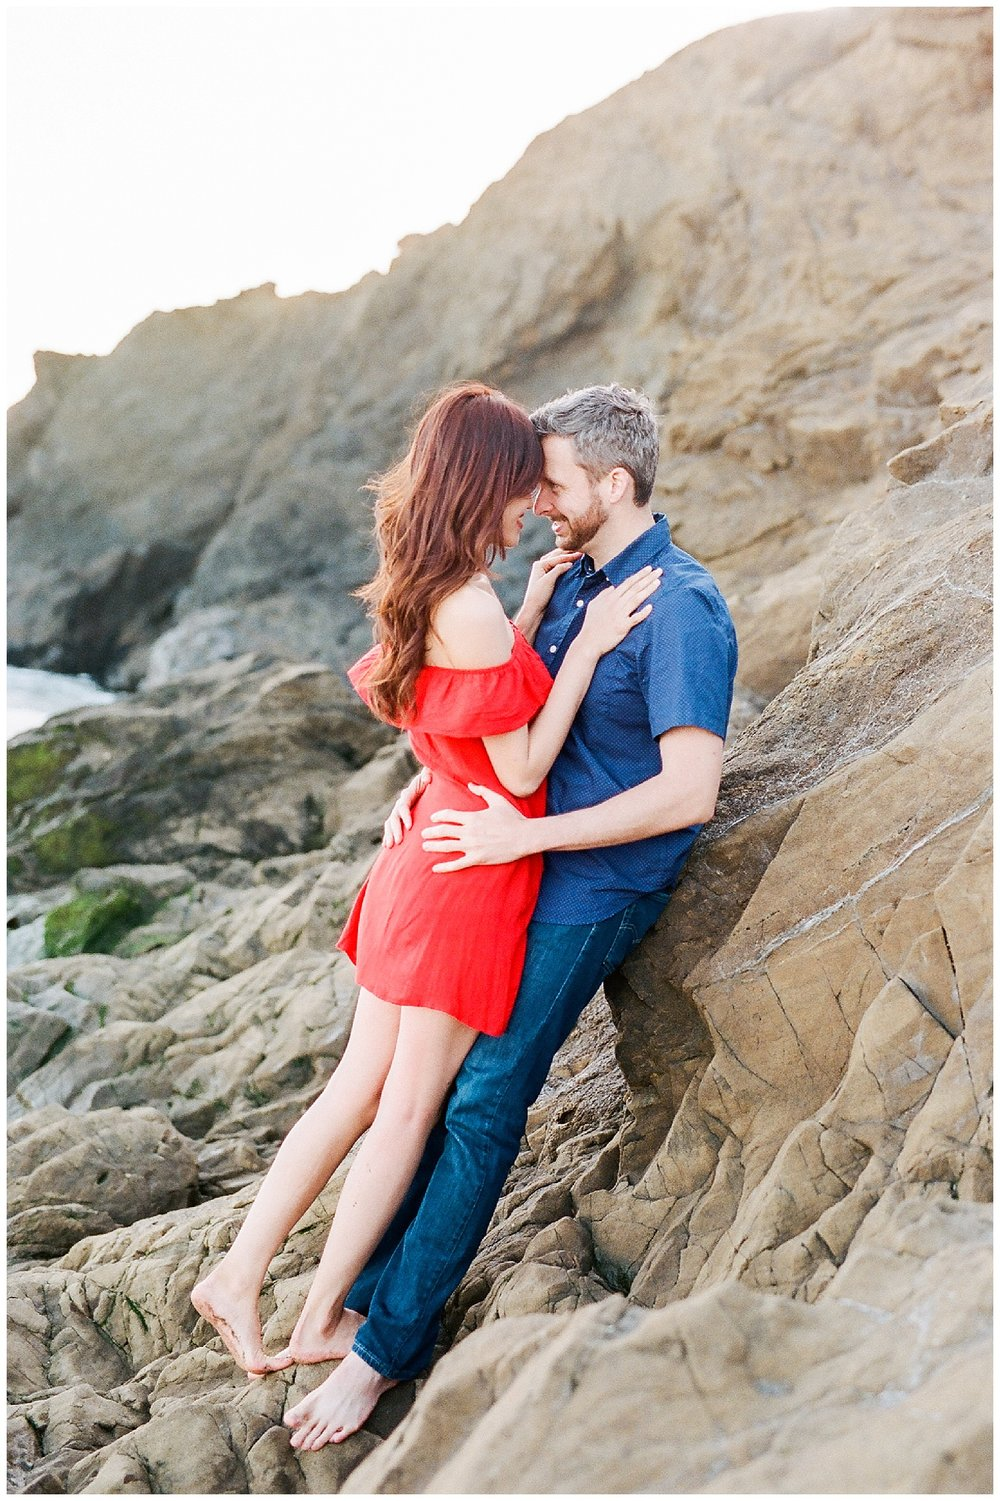 Janine_Licare_Photography_San_Francisco_Wedding_Photographer_0011.jpg